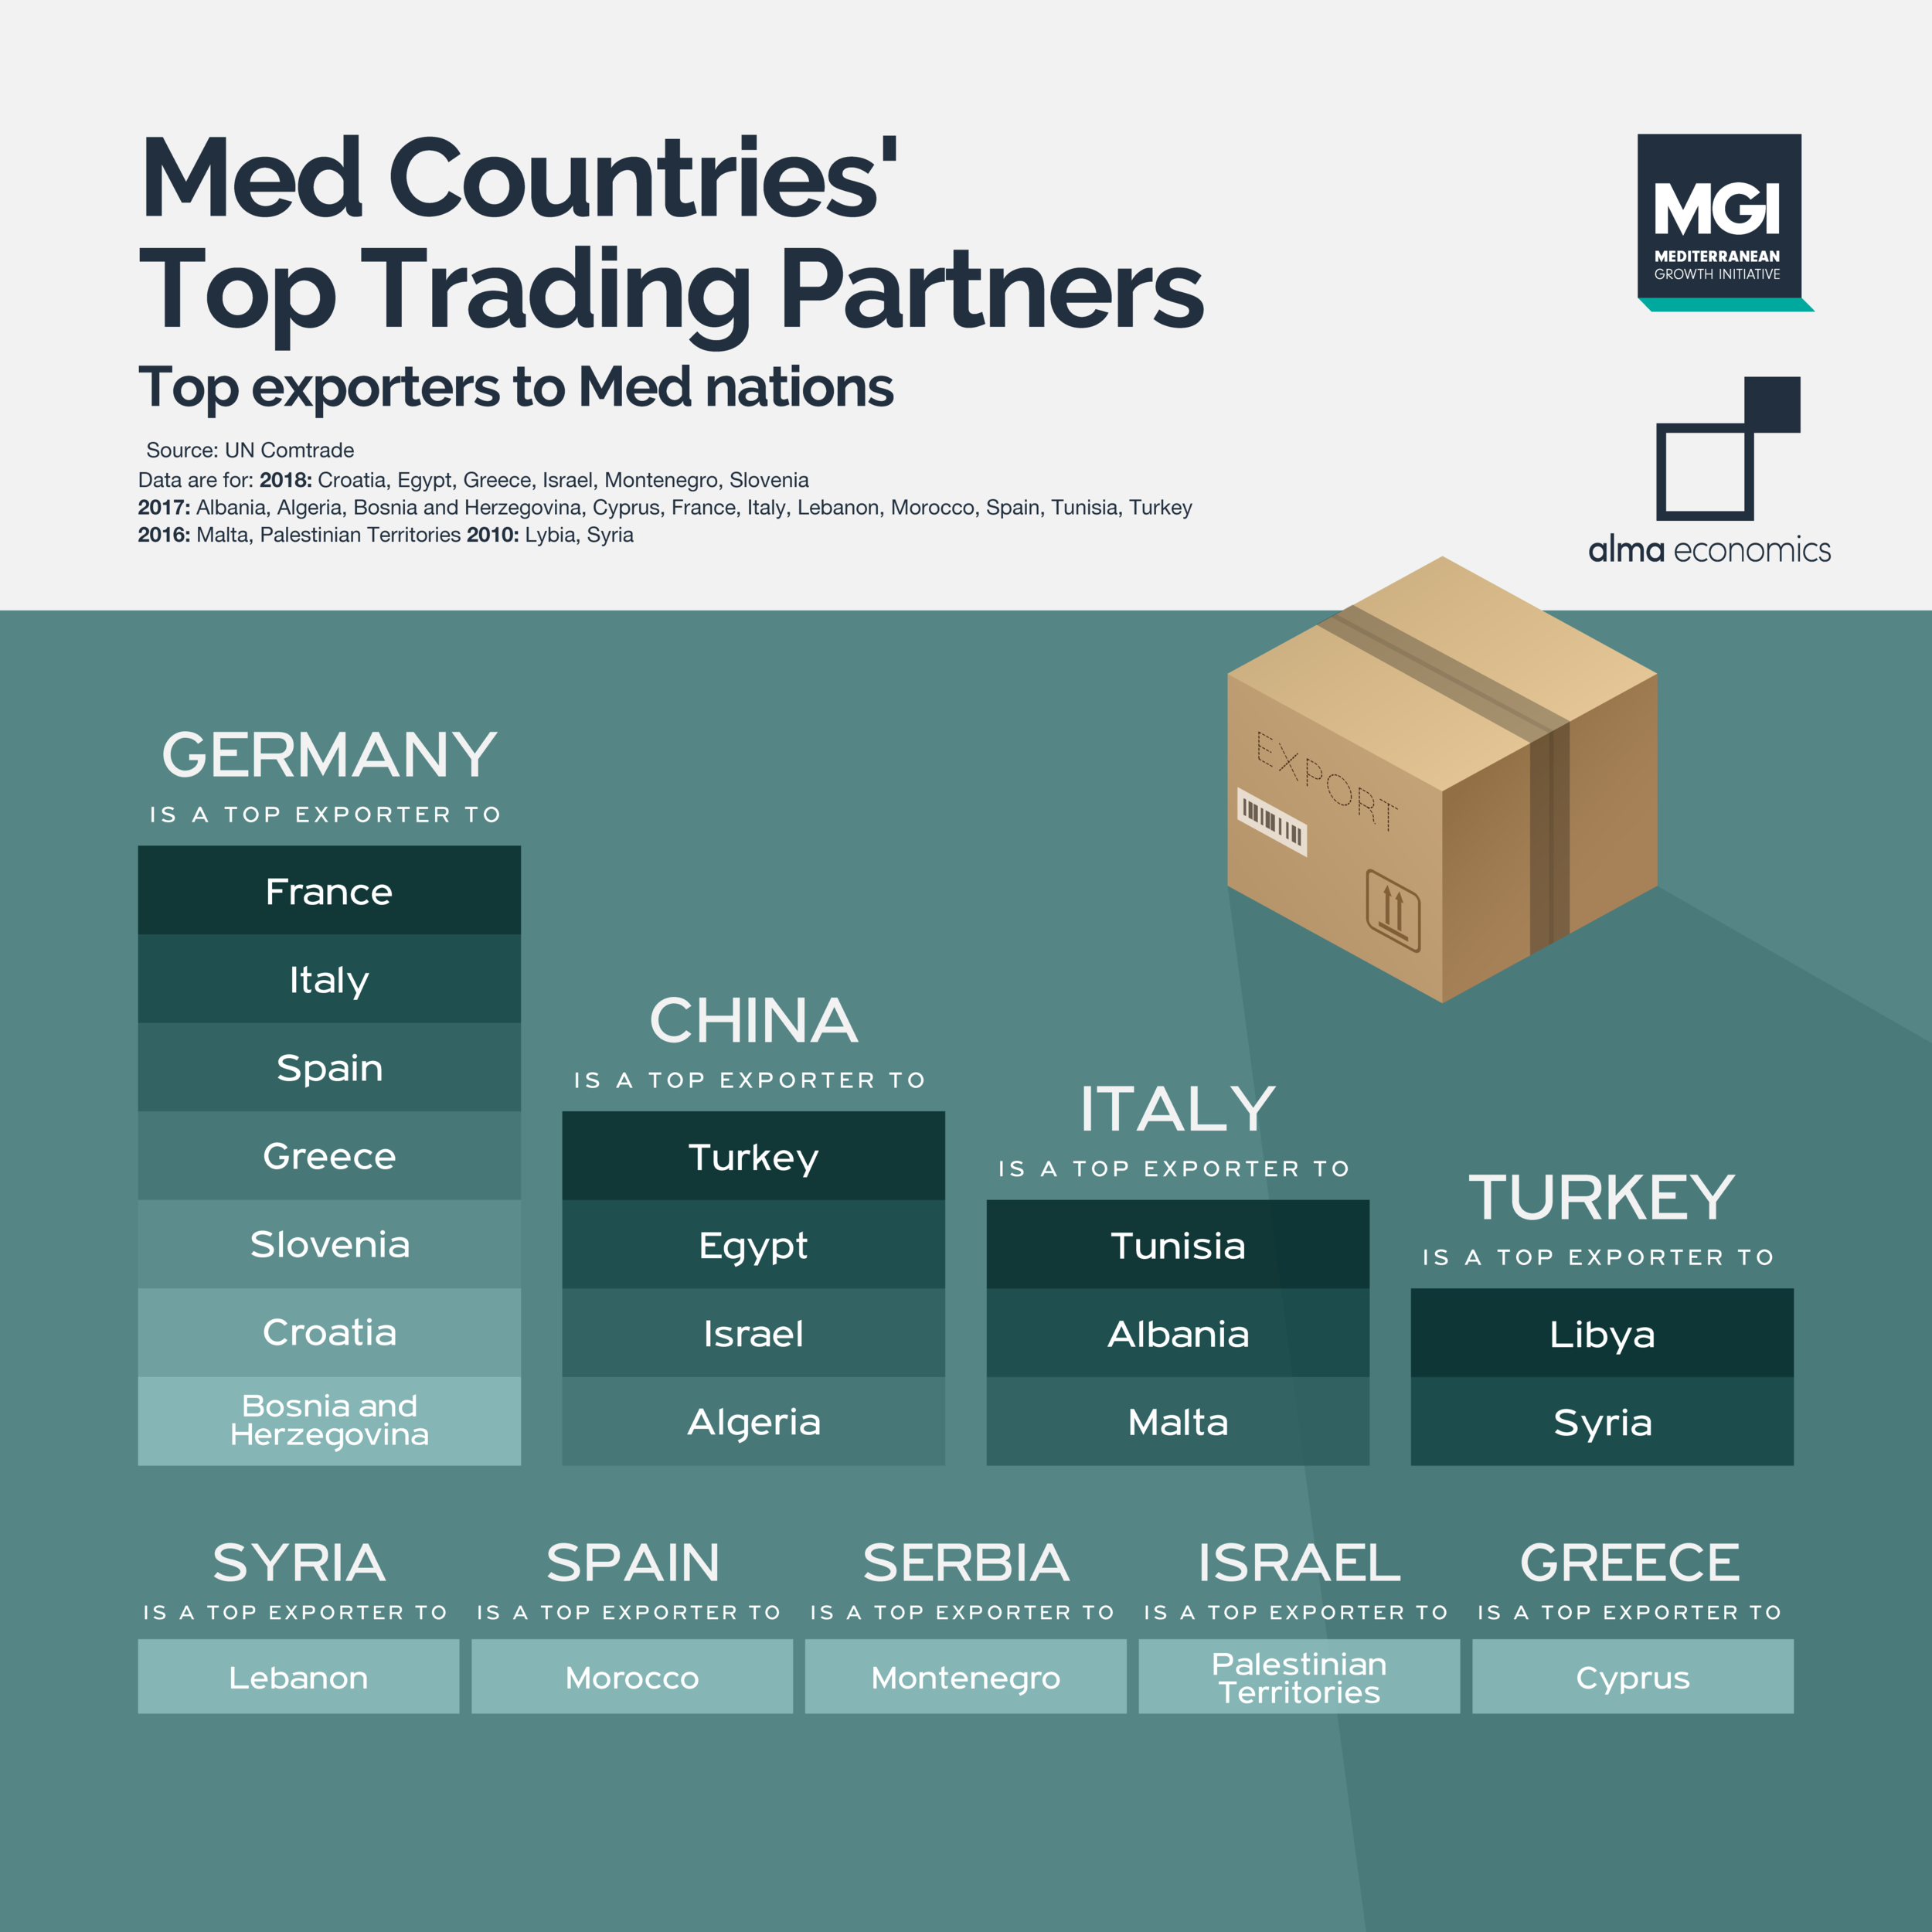 Med Countries' top trading partners - Germany , Italy and China are top exporting partners for 2 out of 3 countries in the Med region